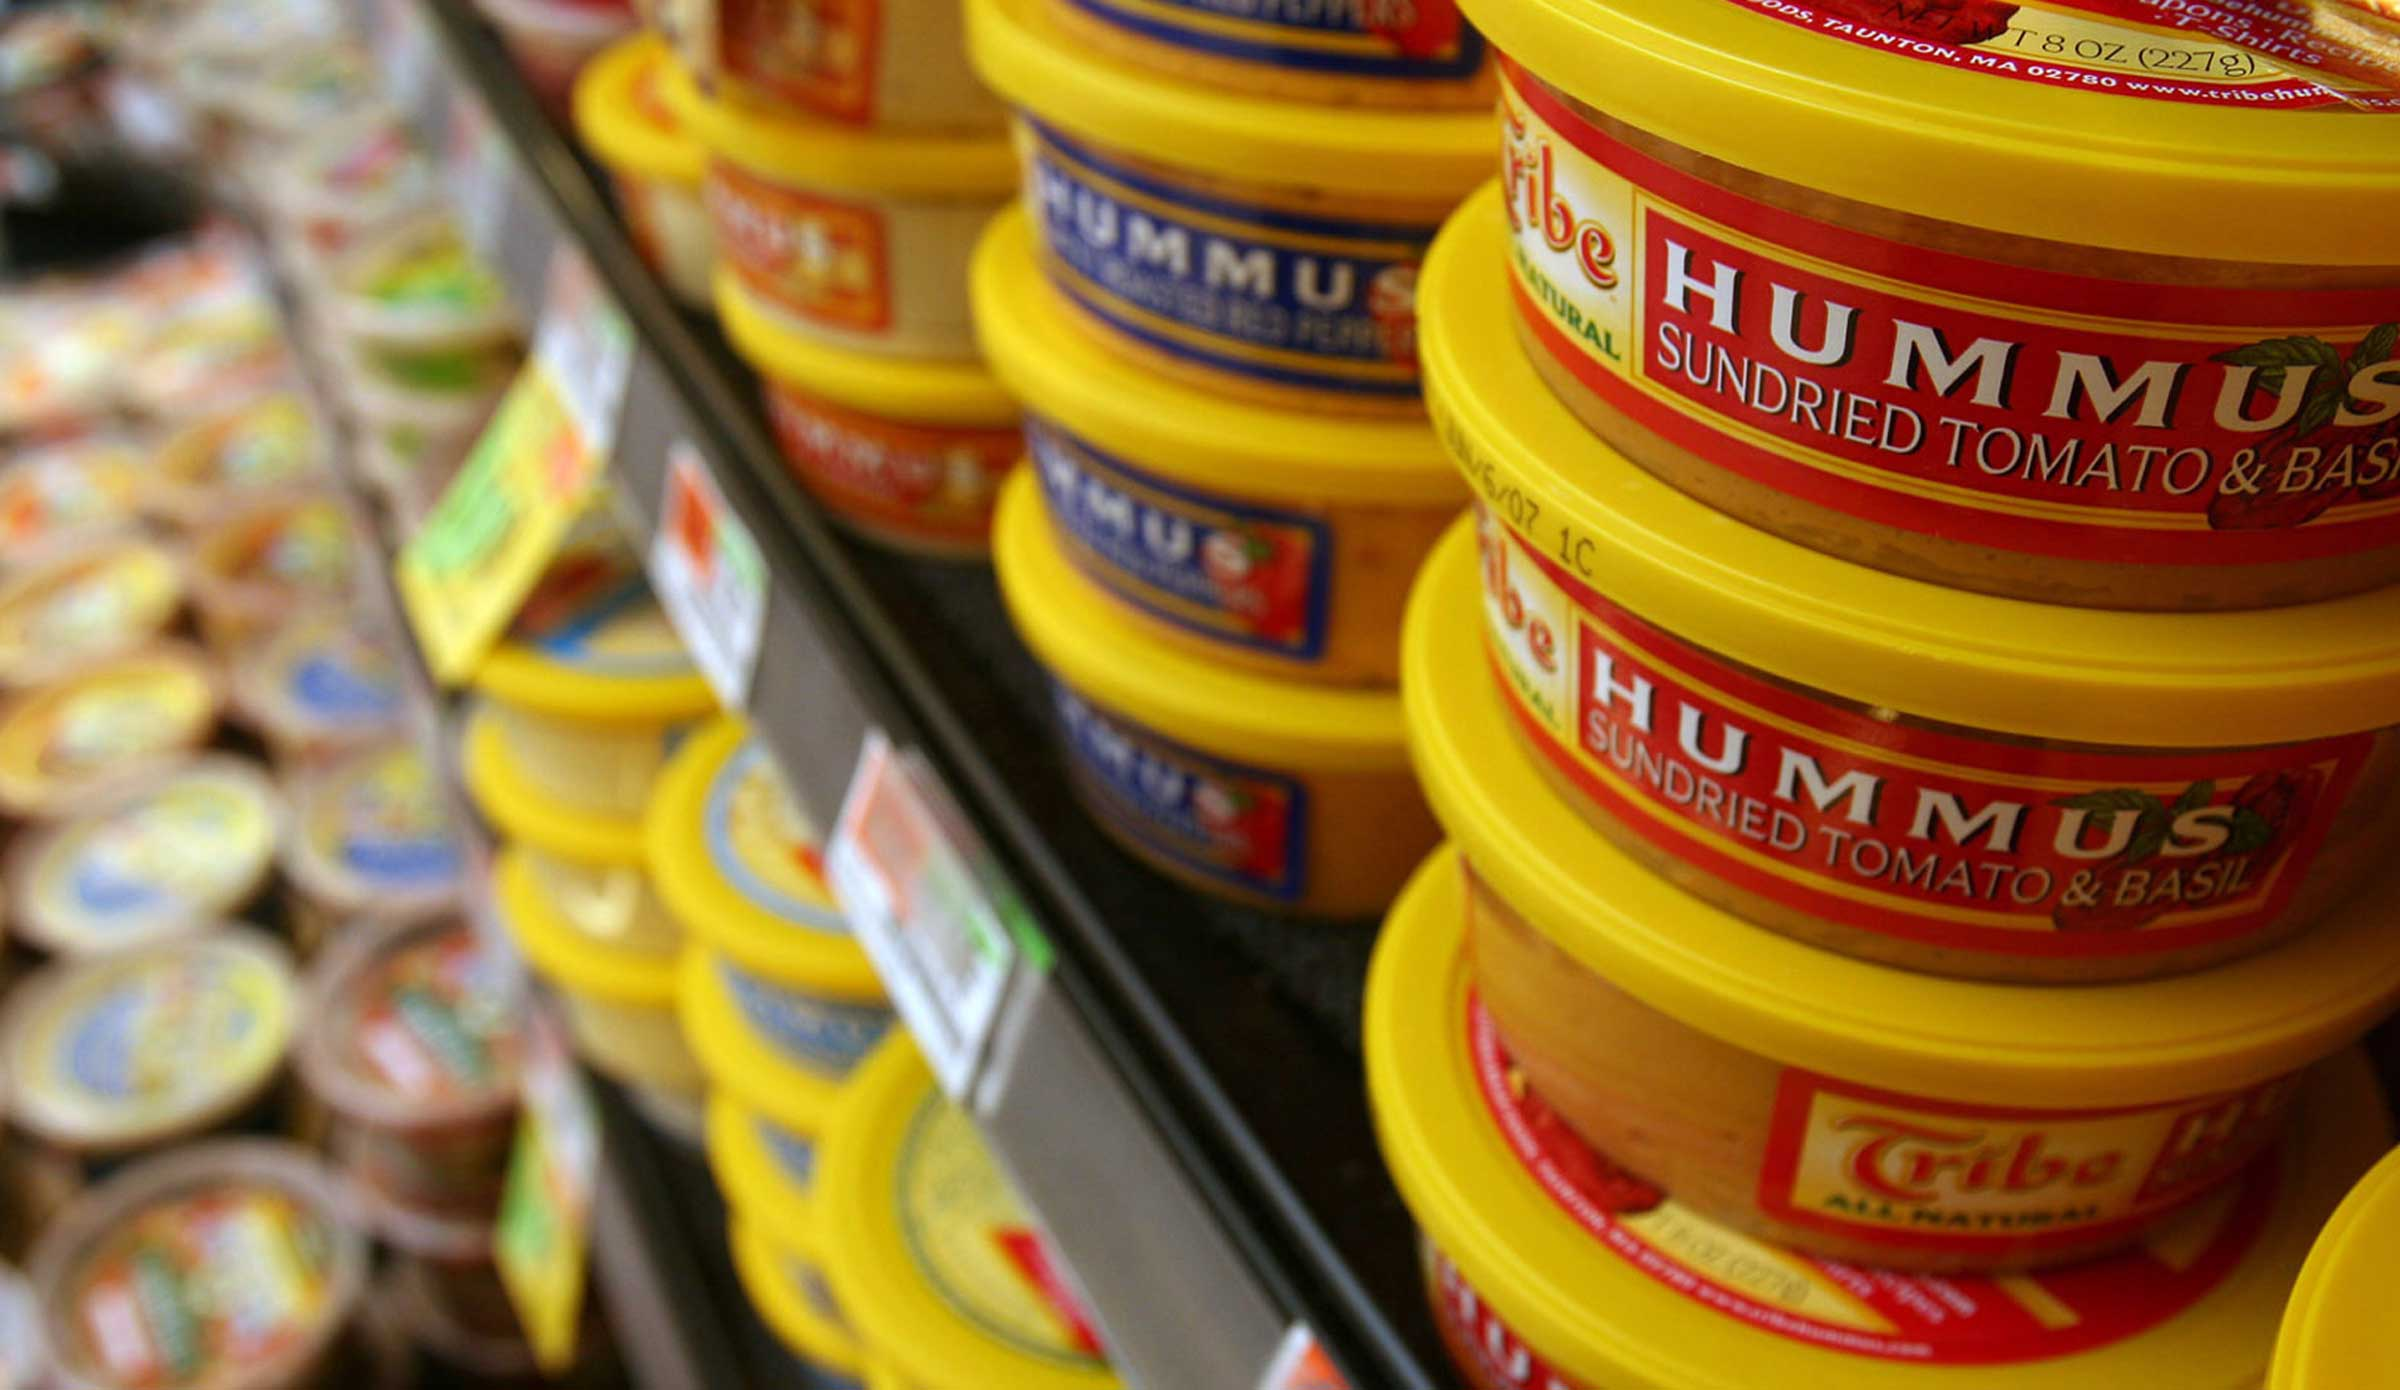 Hummus, once sparse or even non-existent at the local grocer, now often fills an entire refrigerator case like this one at Shaw's supermarket in Concord, N.H. on Tuesday, February 20, 2007